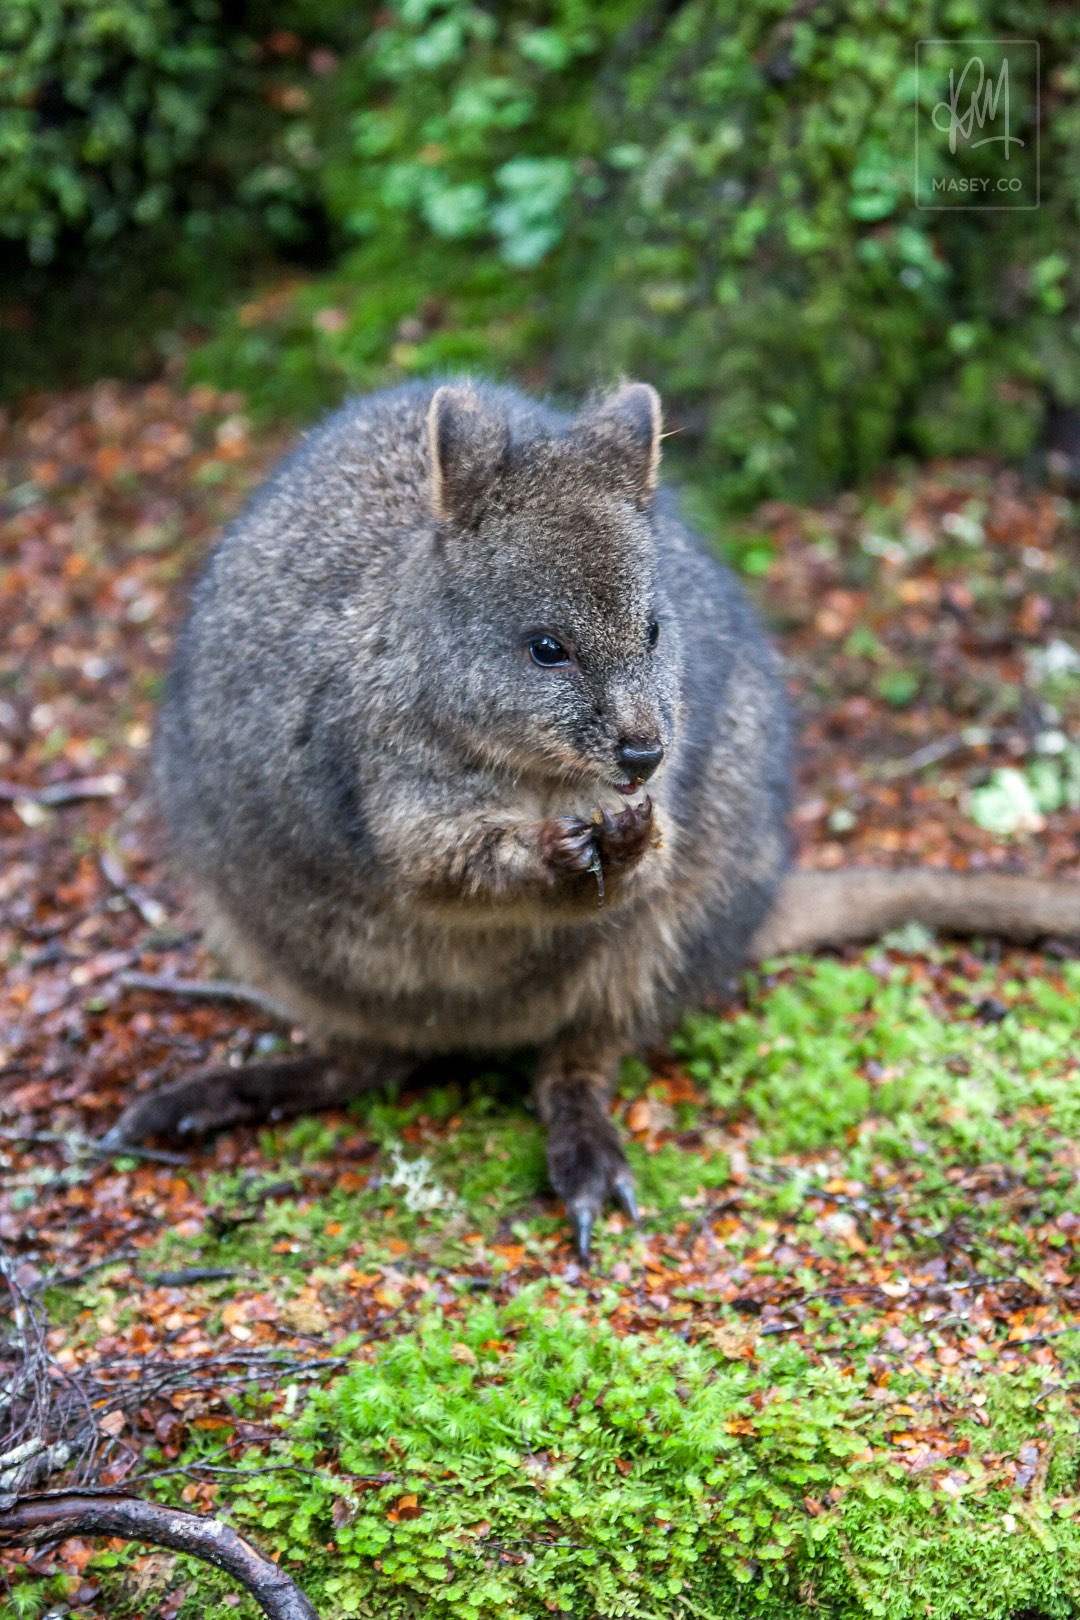 One final Pademelon encounter